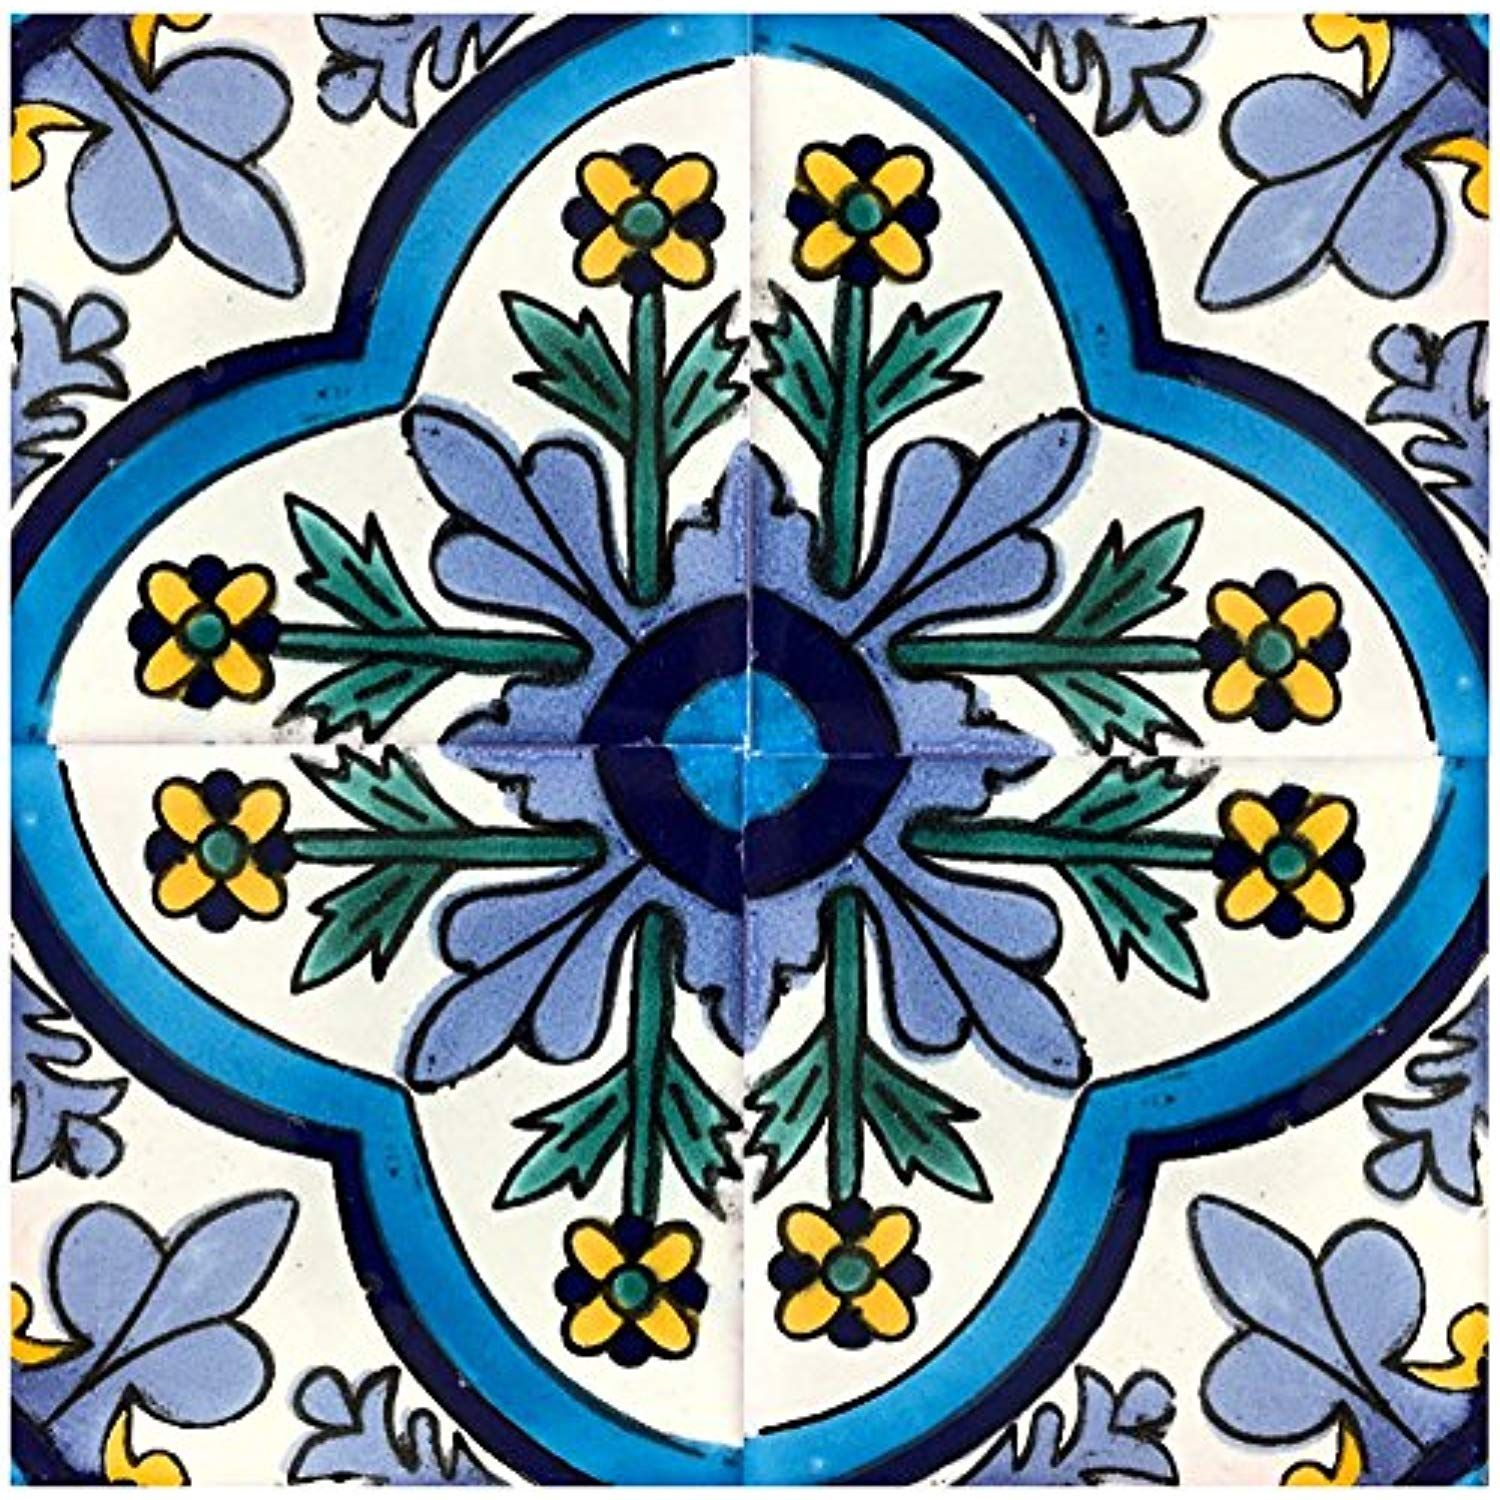 6x6 Inch Green Blue Navy Blue Off White Yellow Rustico Tile and Stone TR6DOLORES Dolores Talavera Tile Box of 45